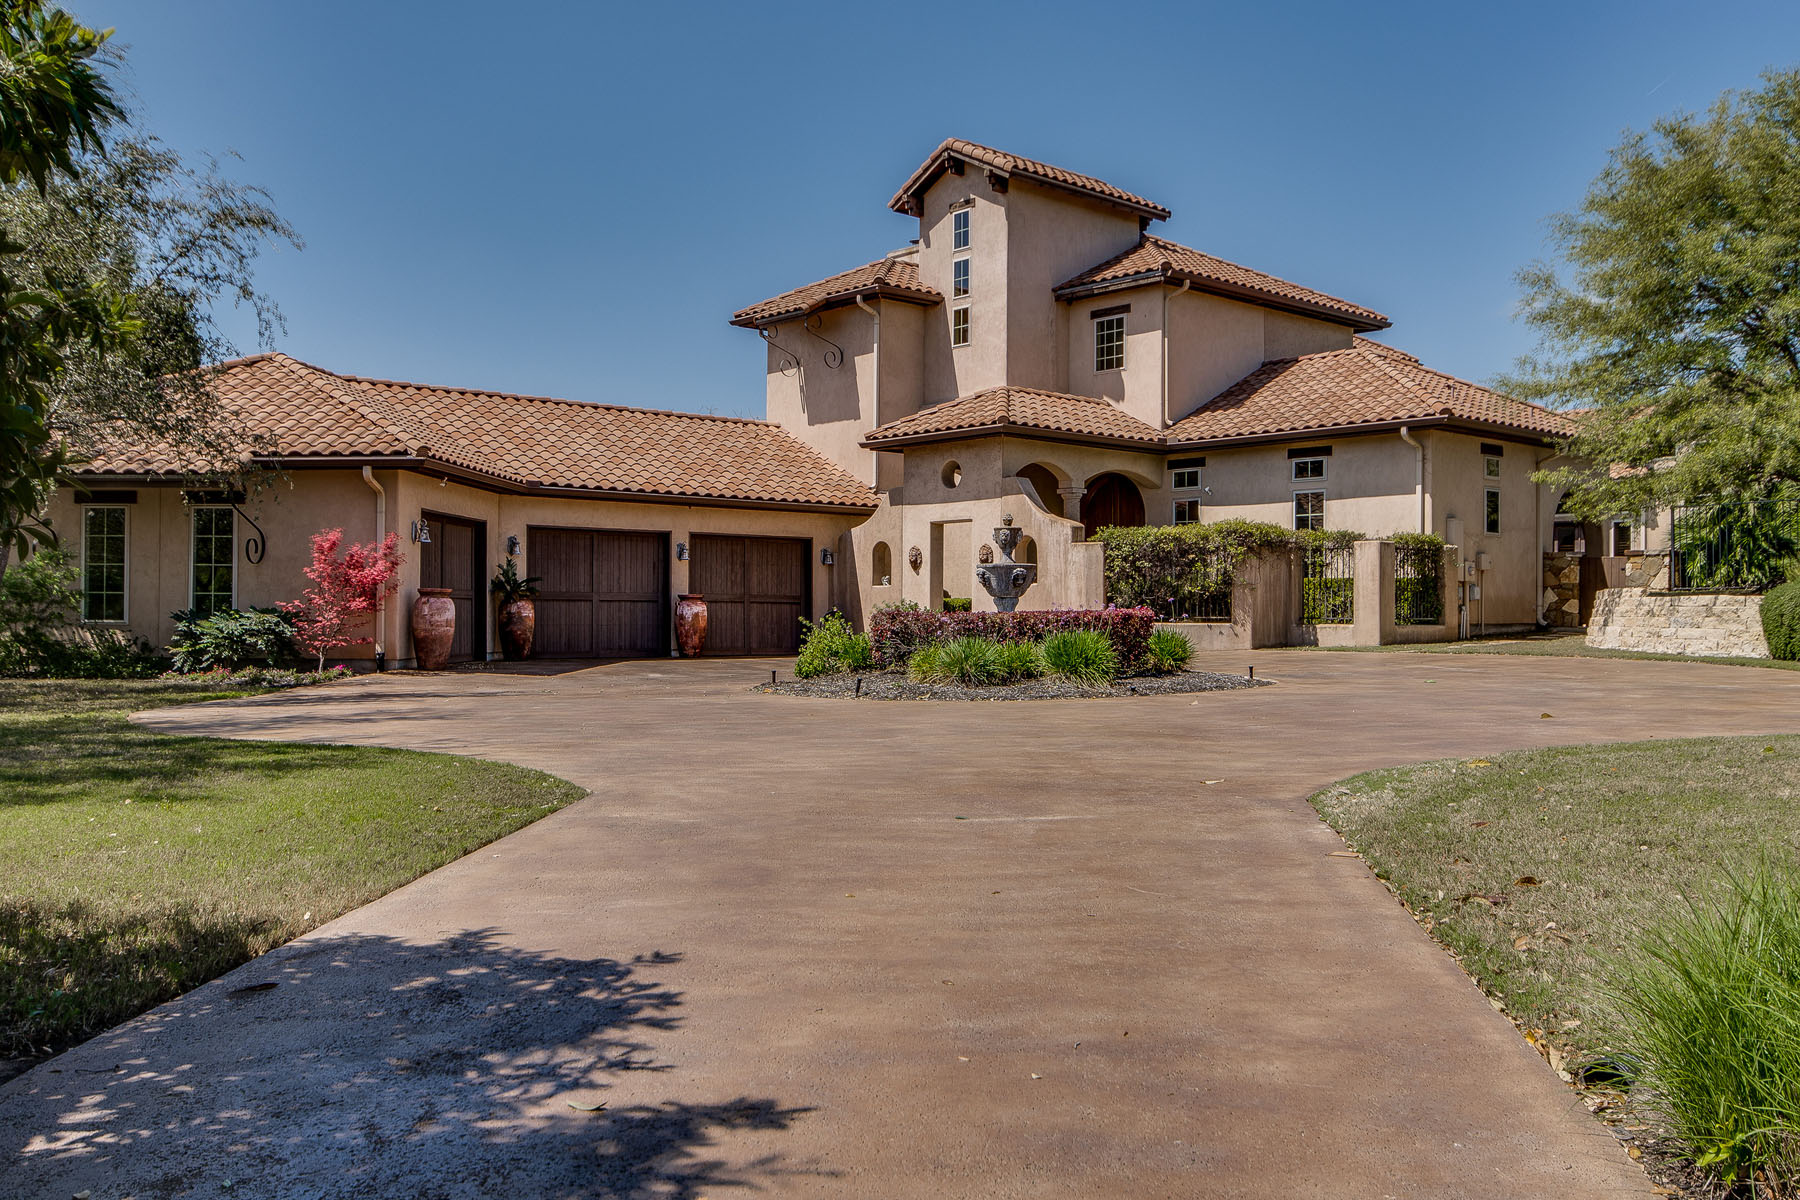 Maison unifamiliale pour l Vente à Golf Course Living at its Finest 2632 University Club Dr Steiner Ranch, Austin, Texas, 78732 États-Unis